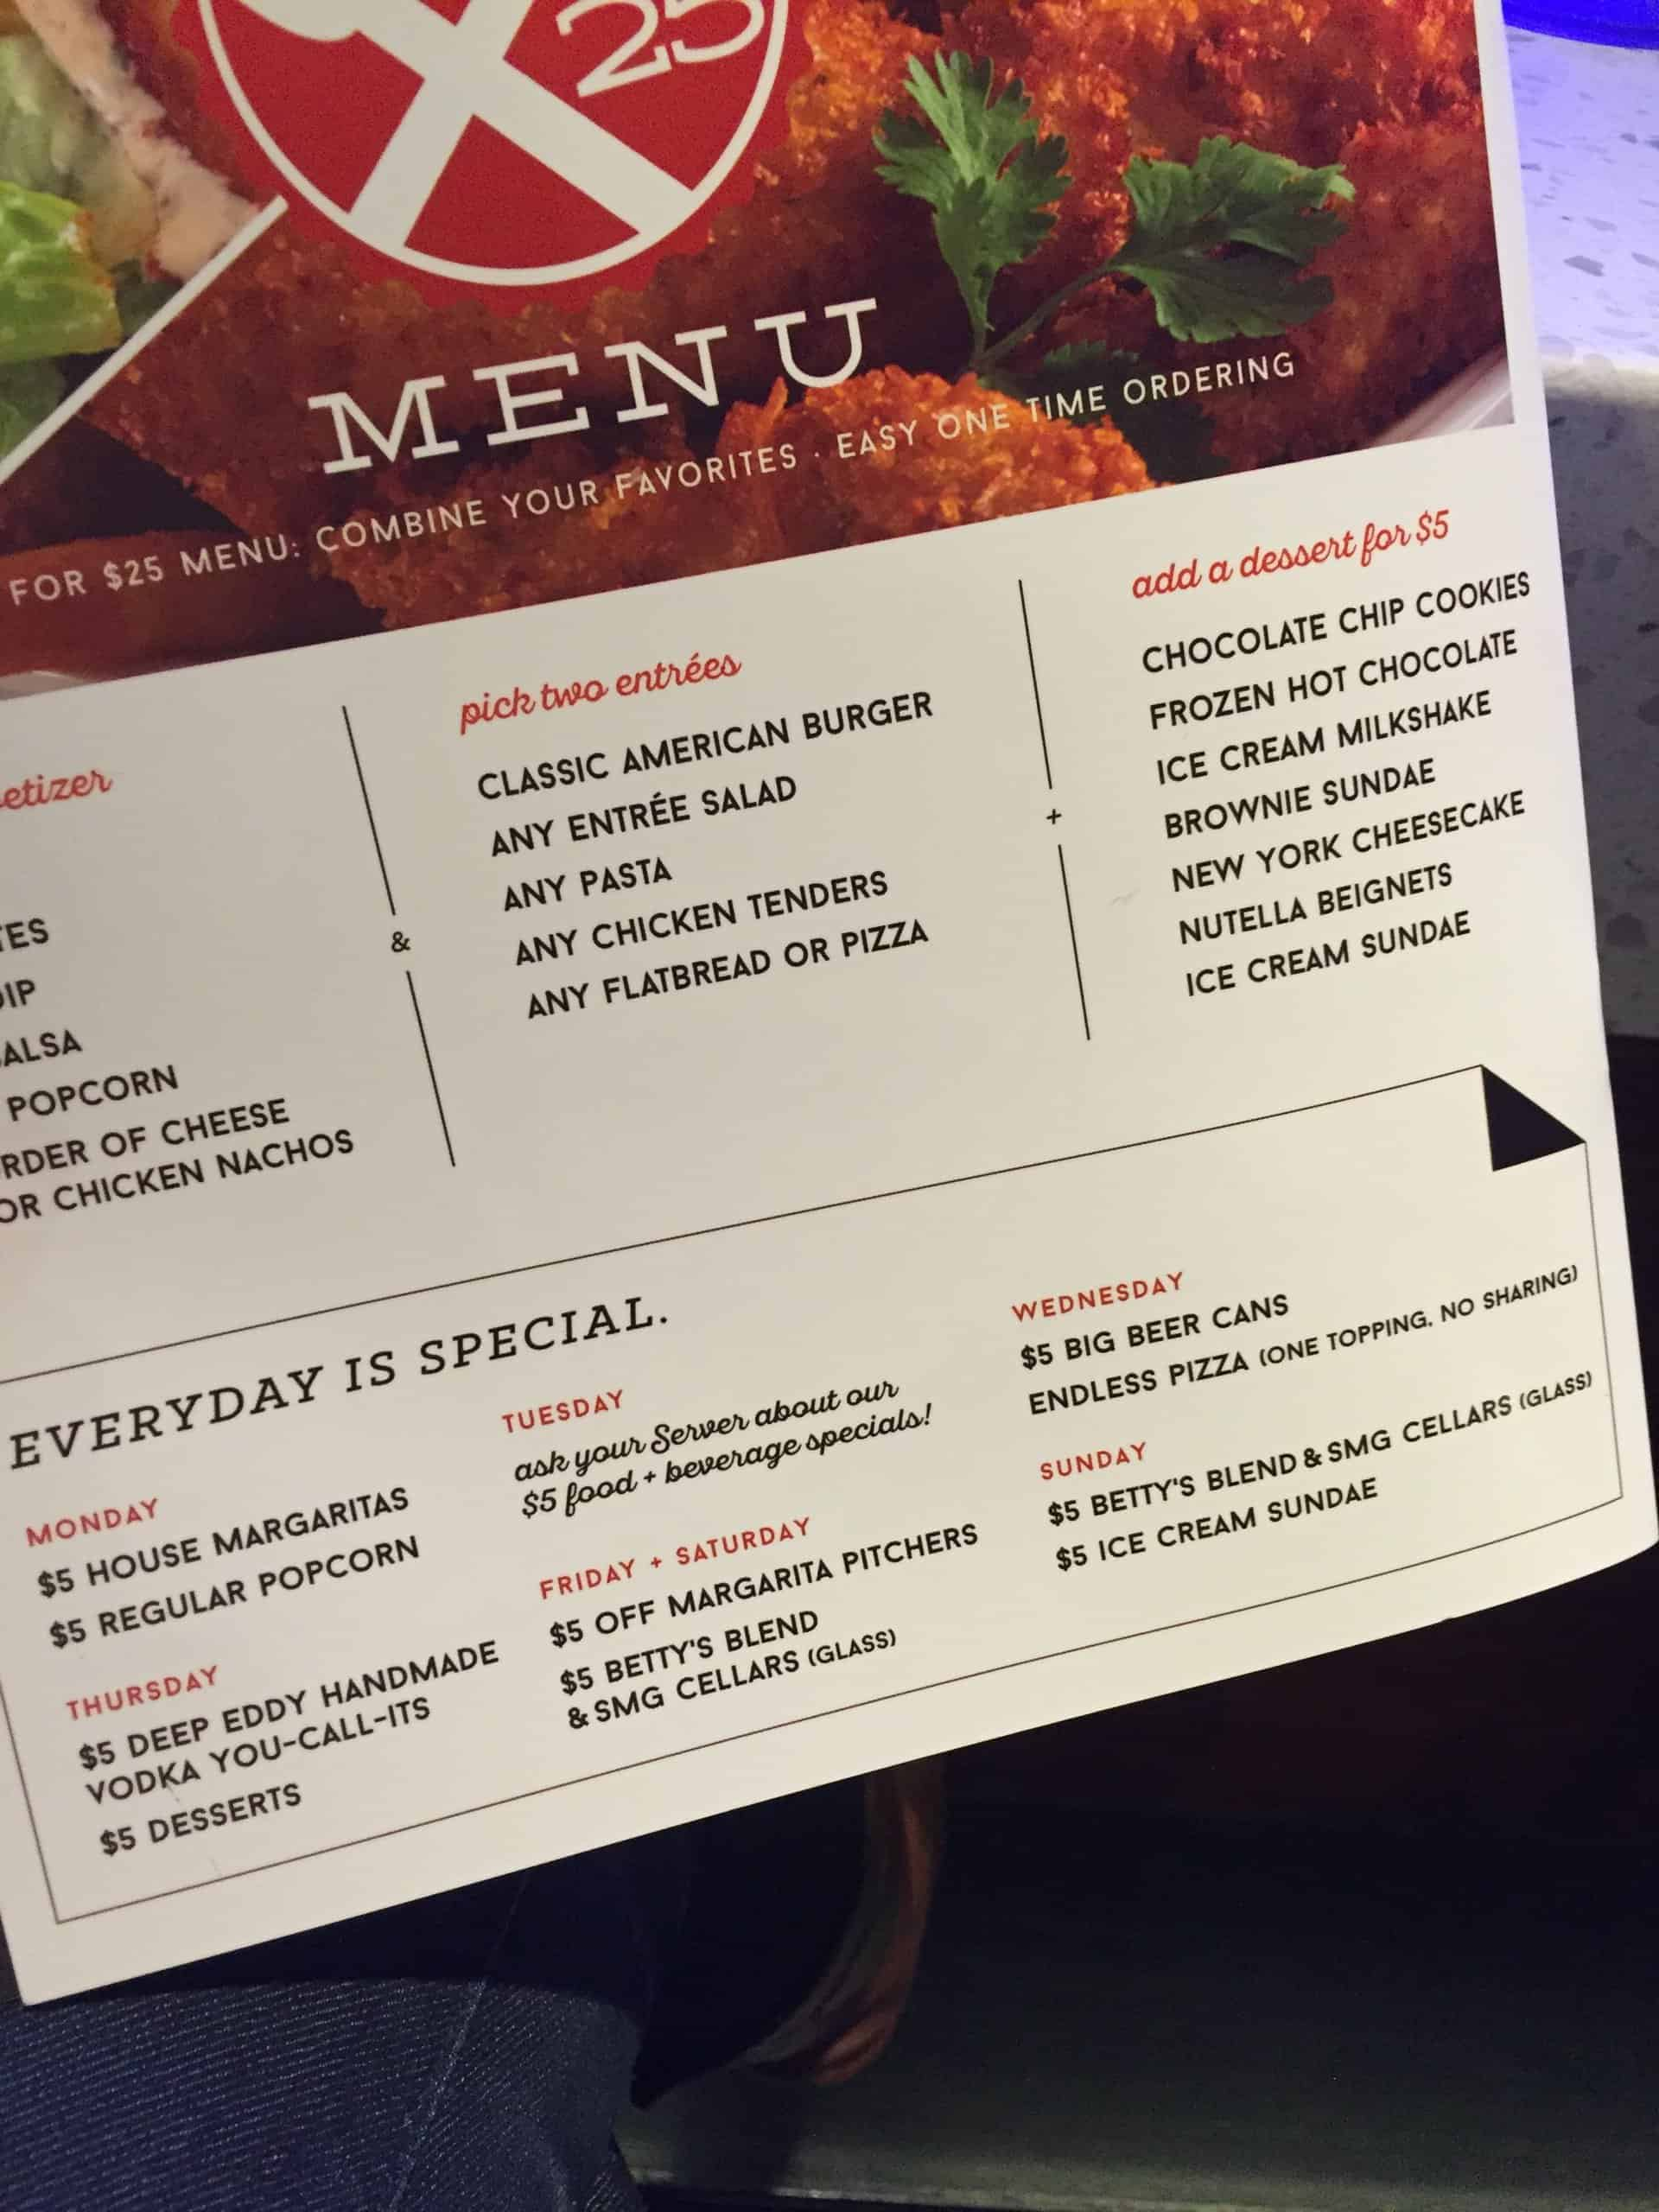 Studio Movie Grill has a new menu